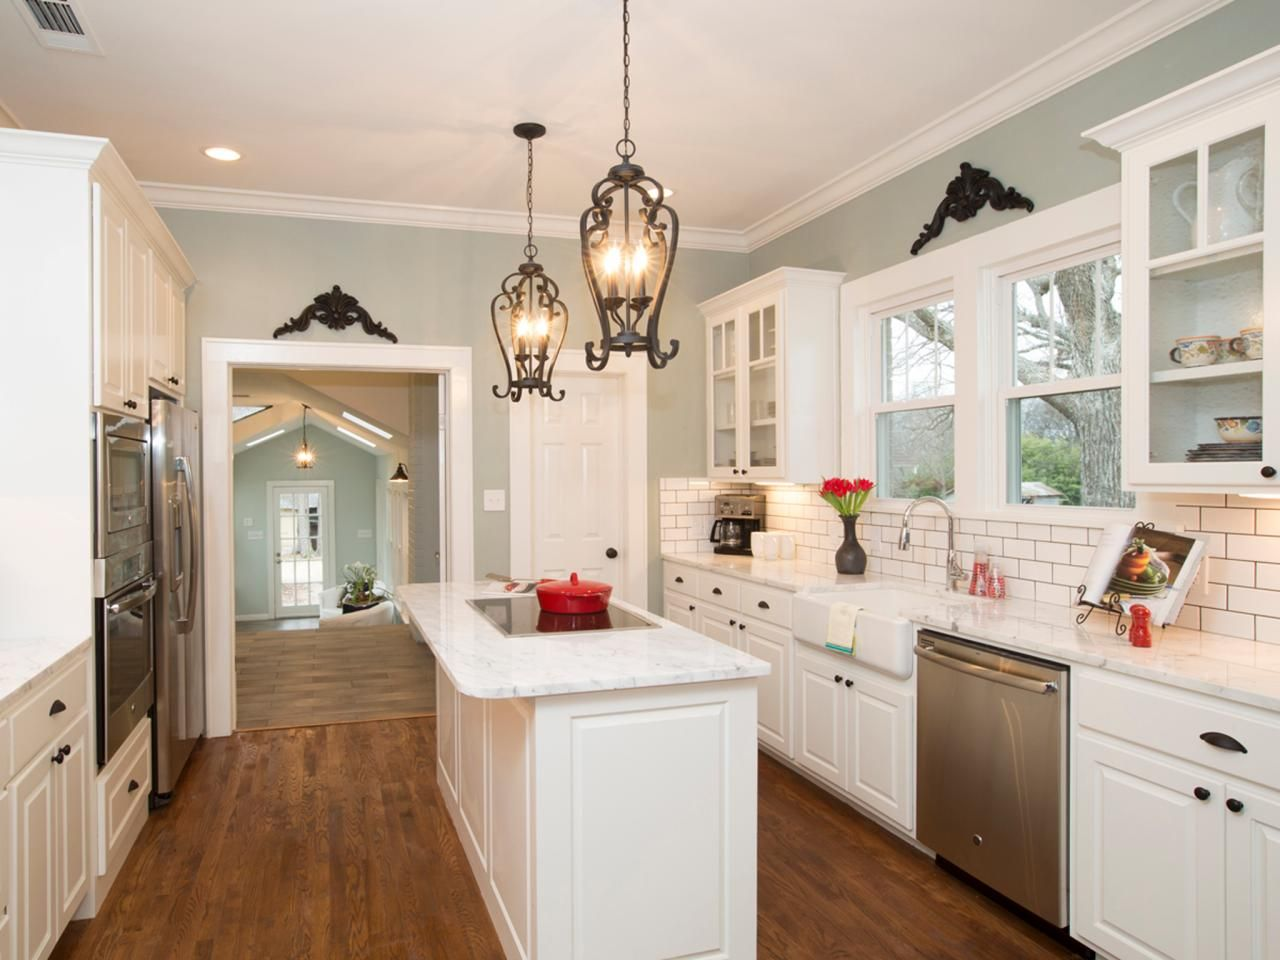 Refinished White Cabinets As Seen On Hgtvs Fixer Upper This Gorgeous Cottage Kitchen